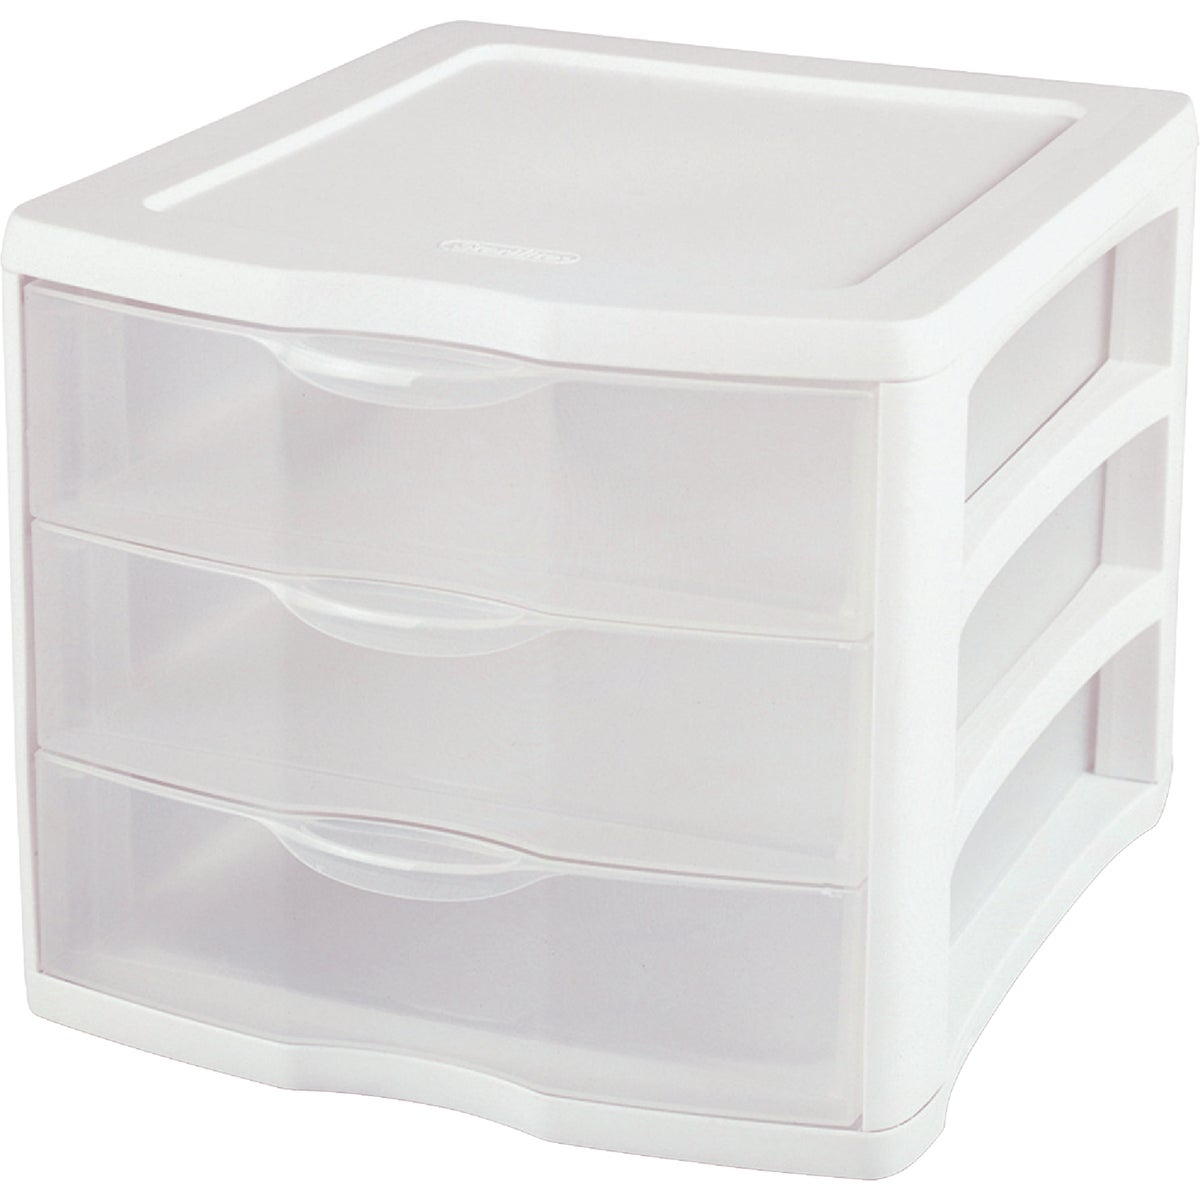 3 DRAWER ORGANIZER - 17918004 by Sterilite Corp